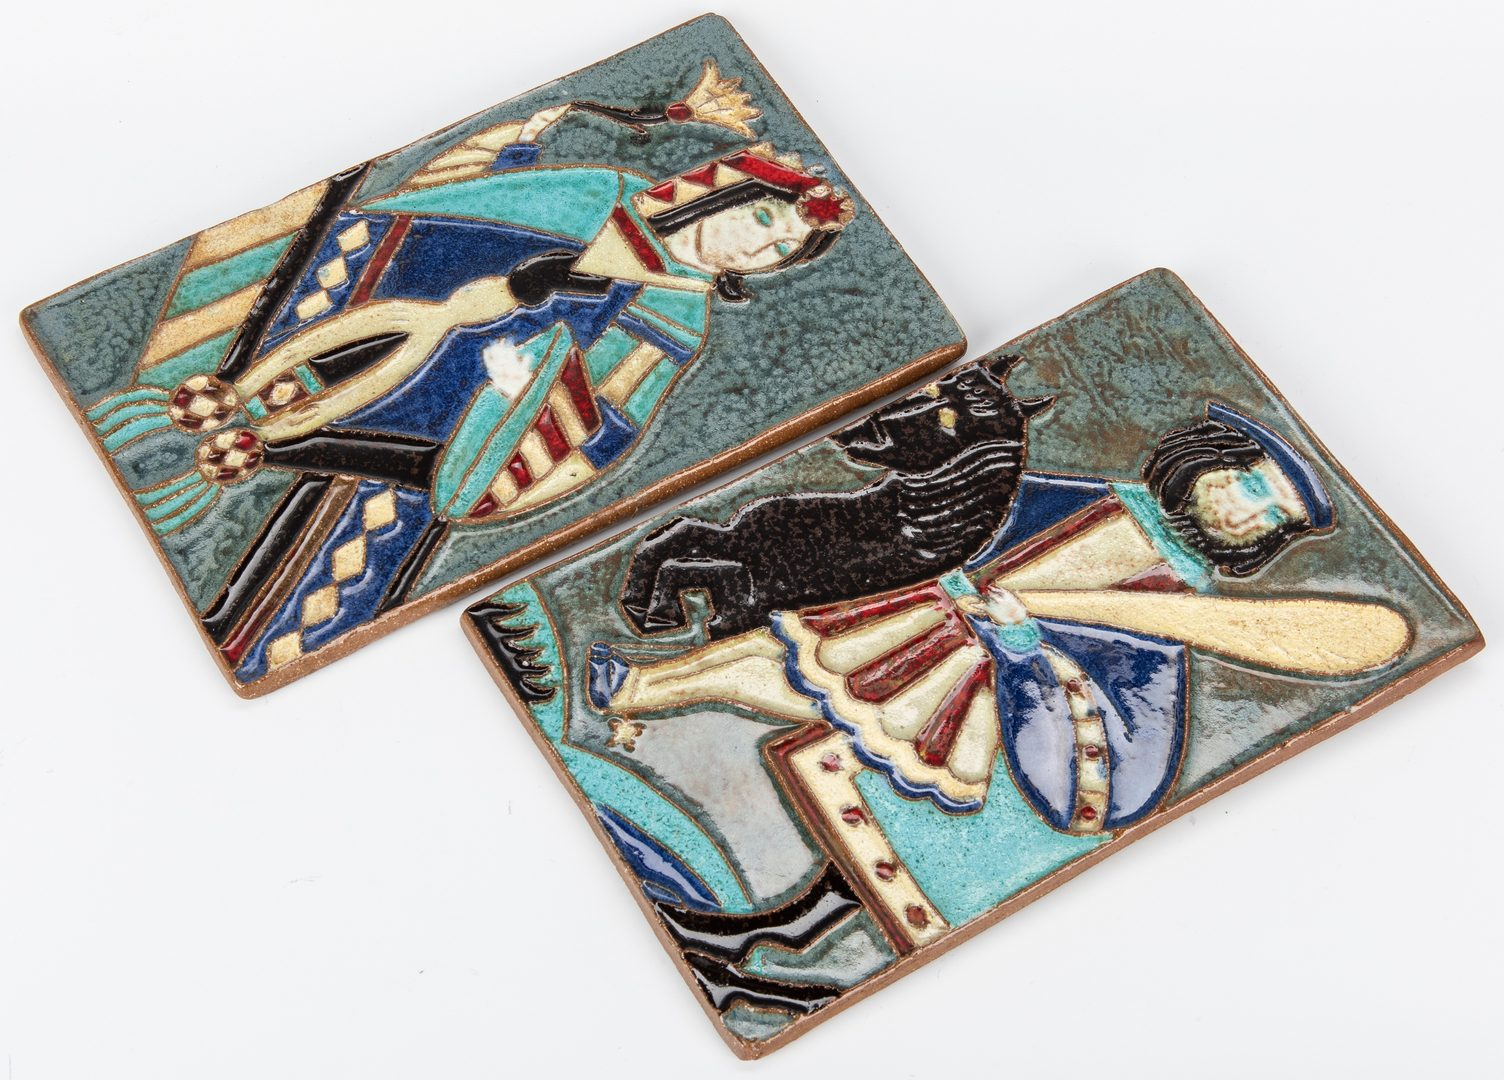 Lot 267: 4 Pcs Van Briggle Art Pottery, 2 Ceramic Tiles & 2 others